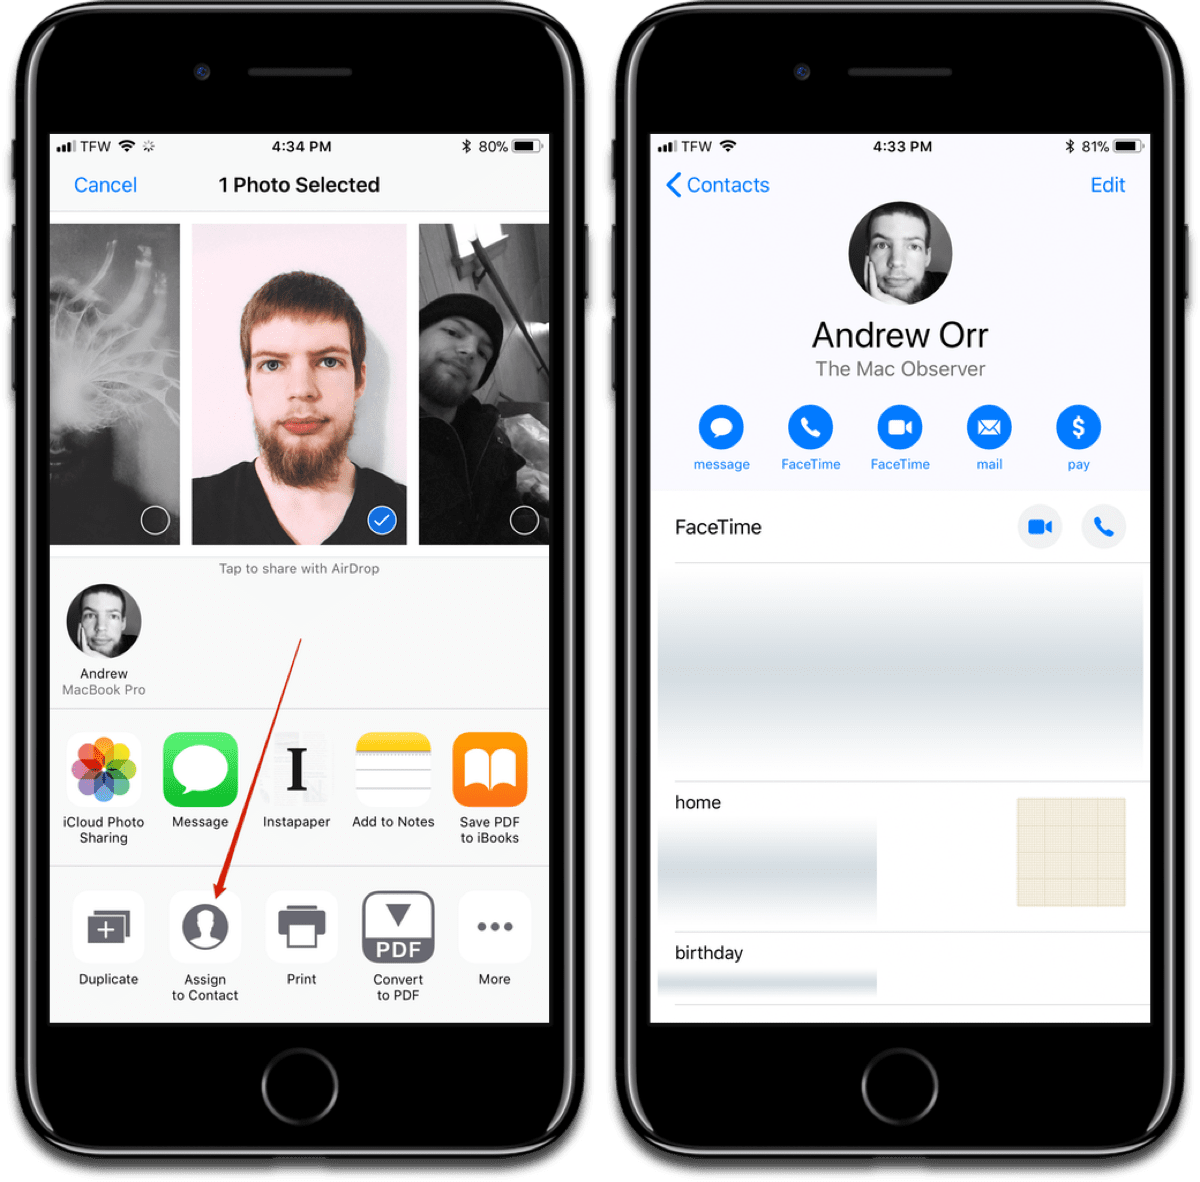 Readjust contact photos in the Photos app, not Contacts app.